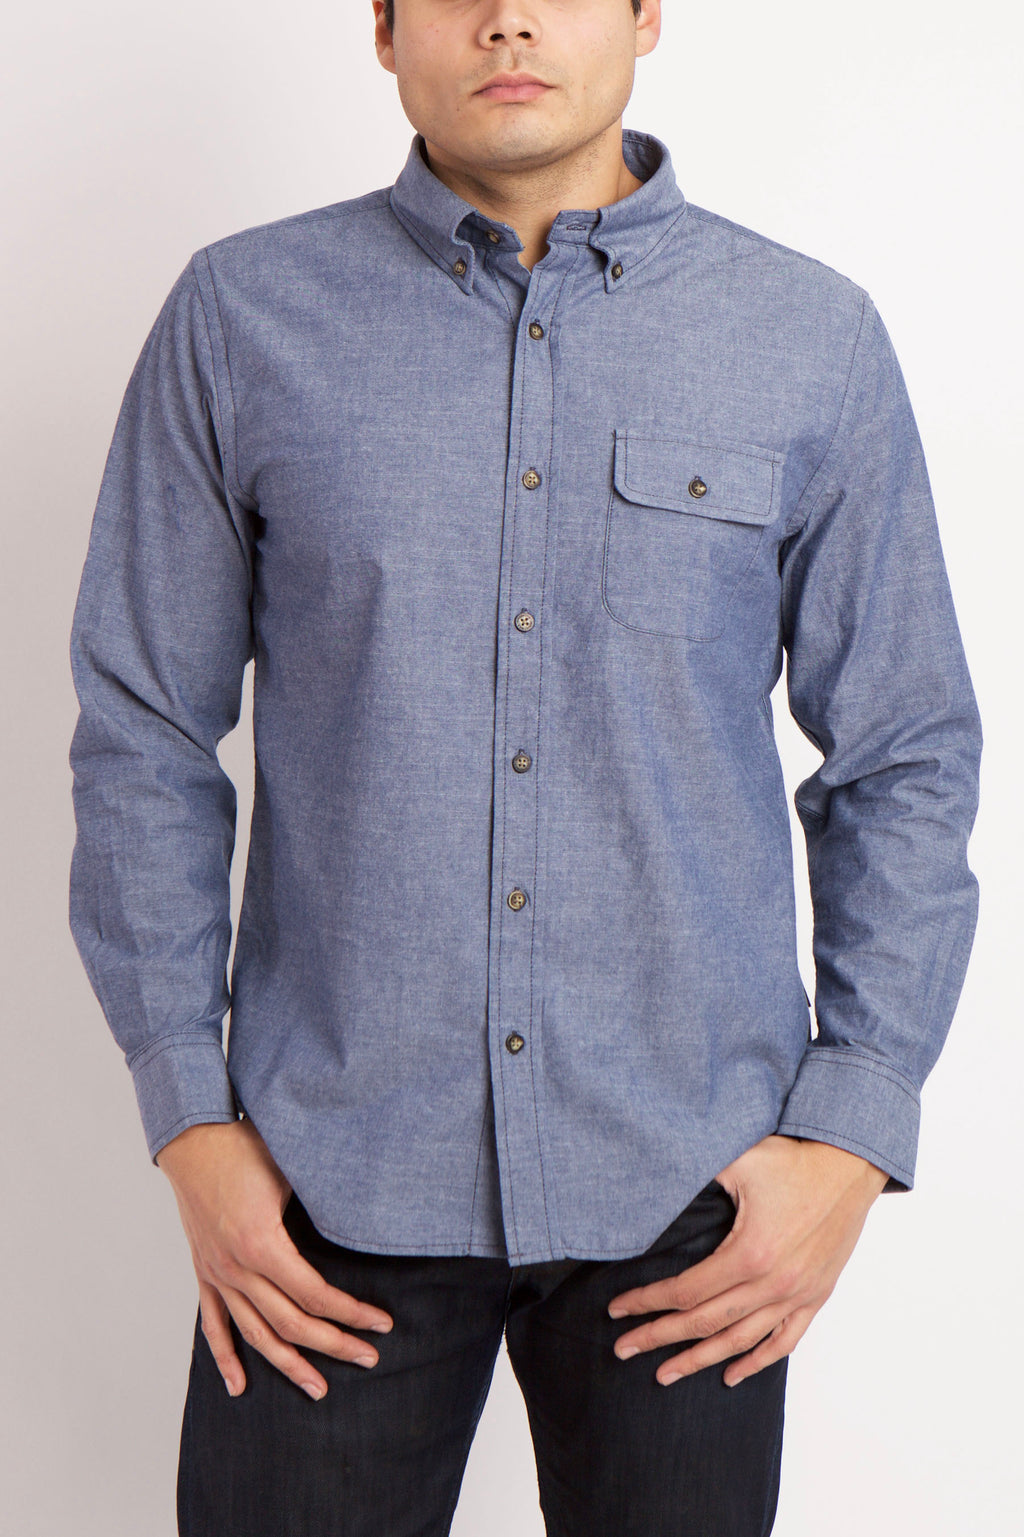 MAN WEARS BLUE BUTTON UP WOVEN SHIRT WITH HANDS IN POCKETS